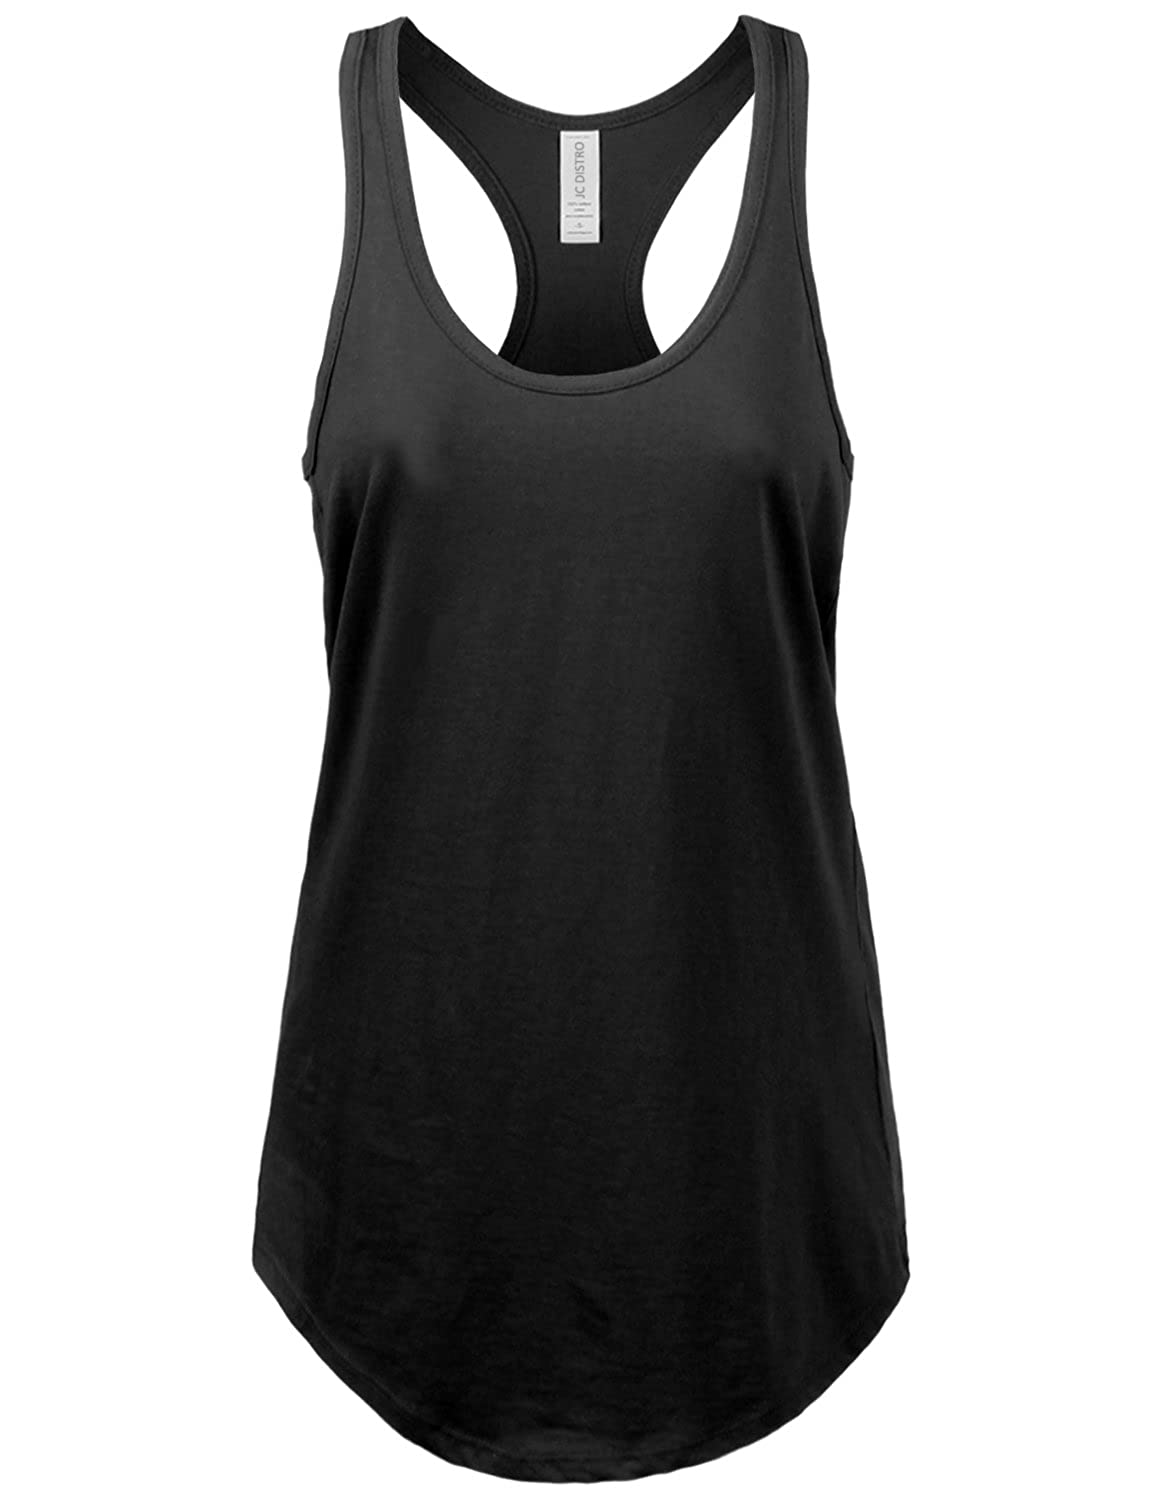 Jc Distro Womens Basic Jersey Racer Back Tank Top With T Shirt Scallop Bottom Clothing